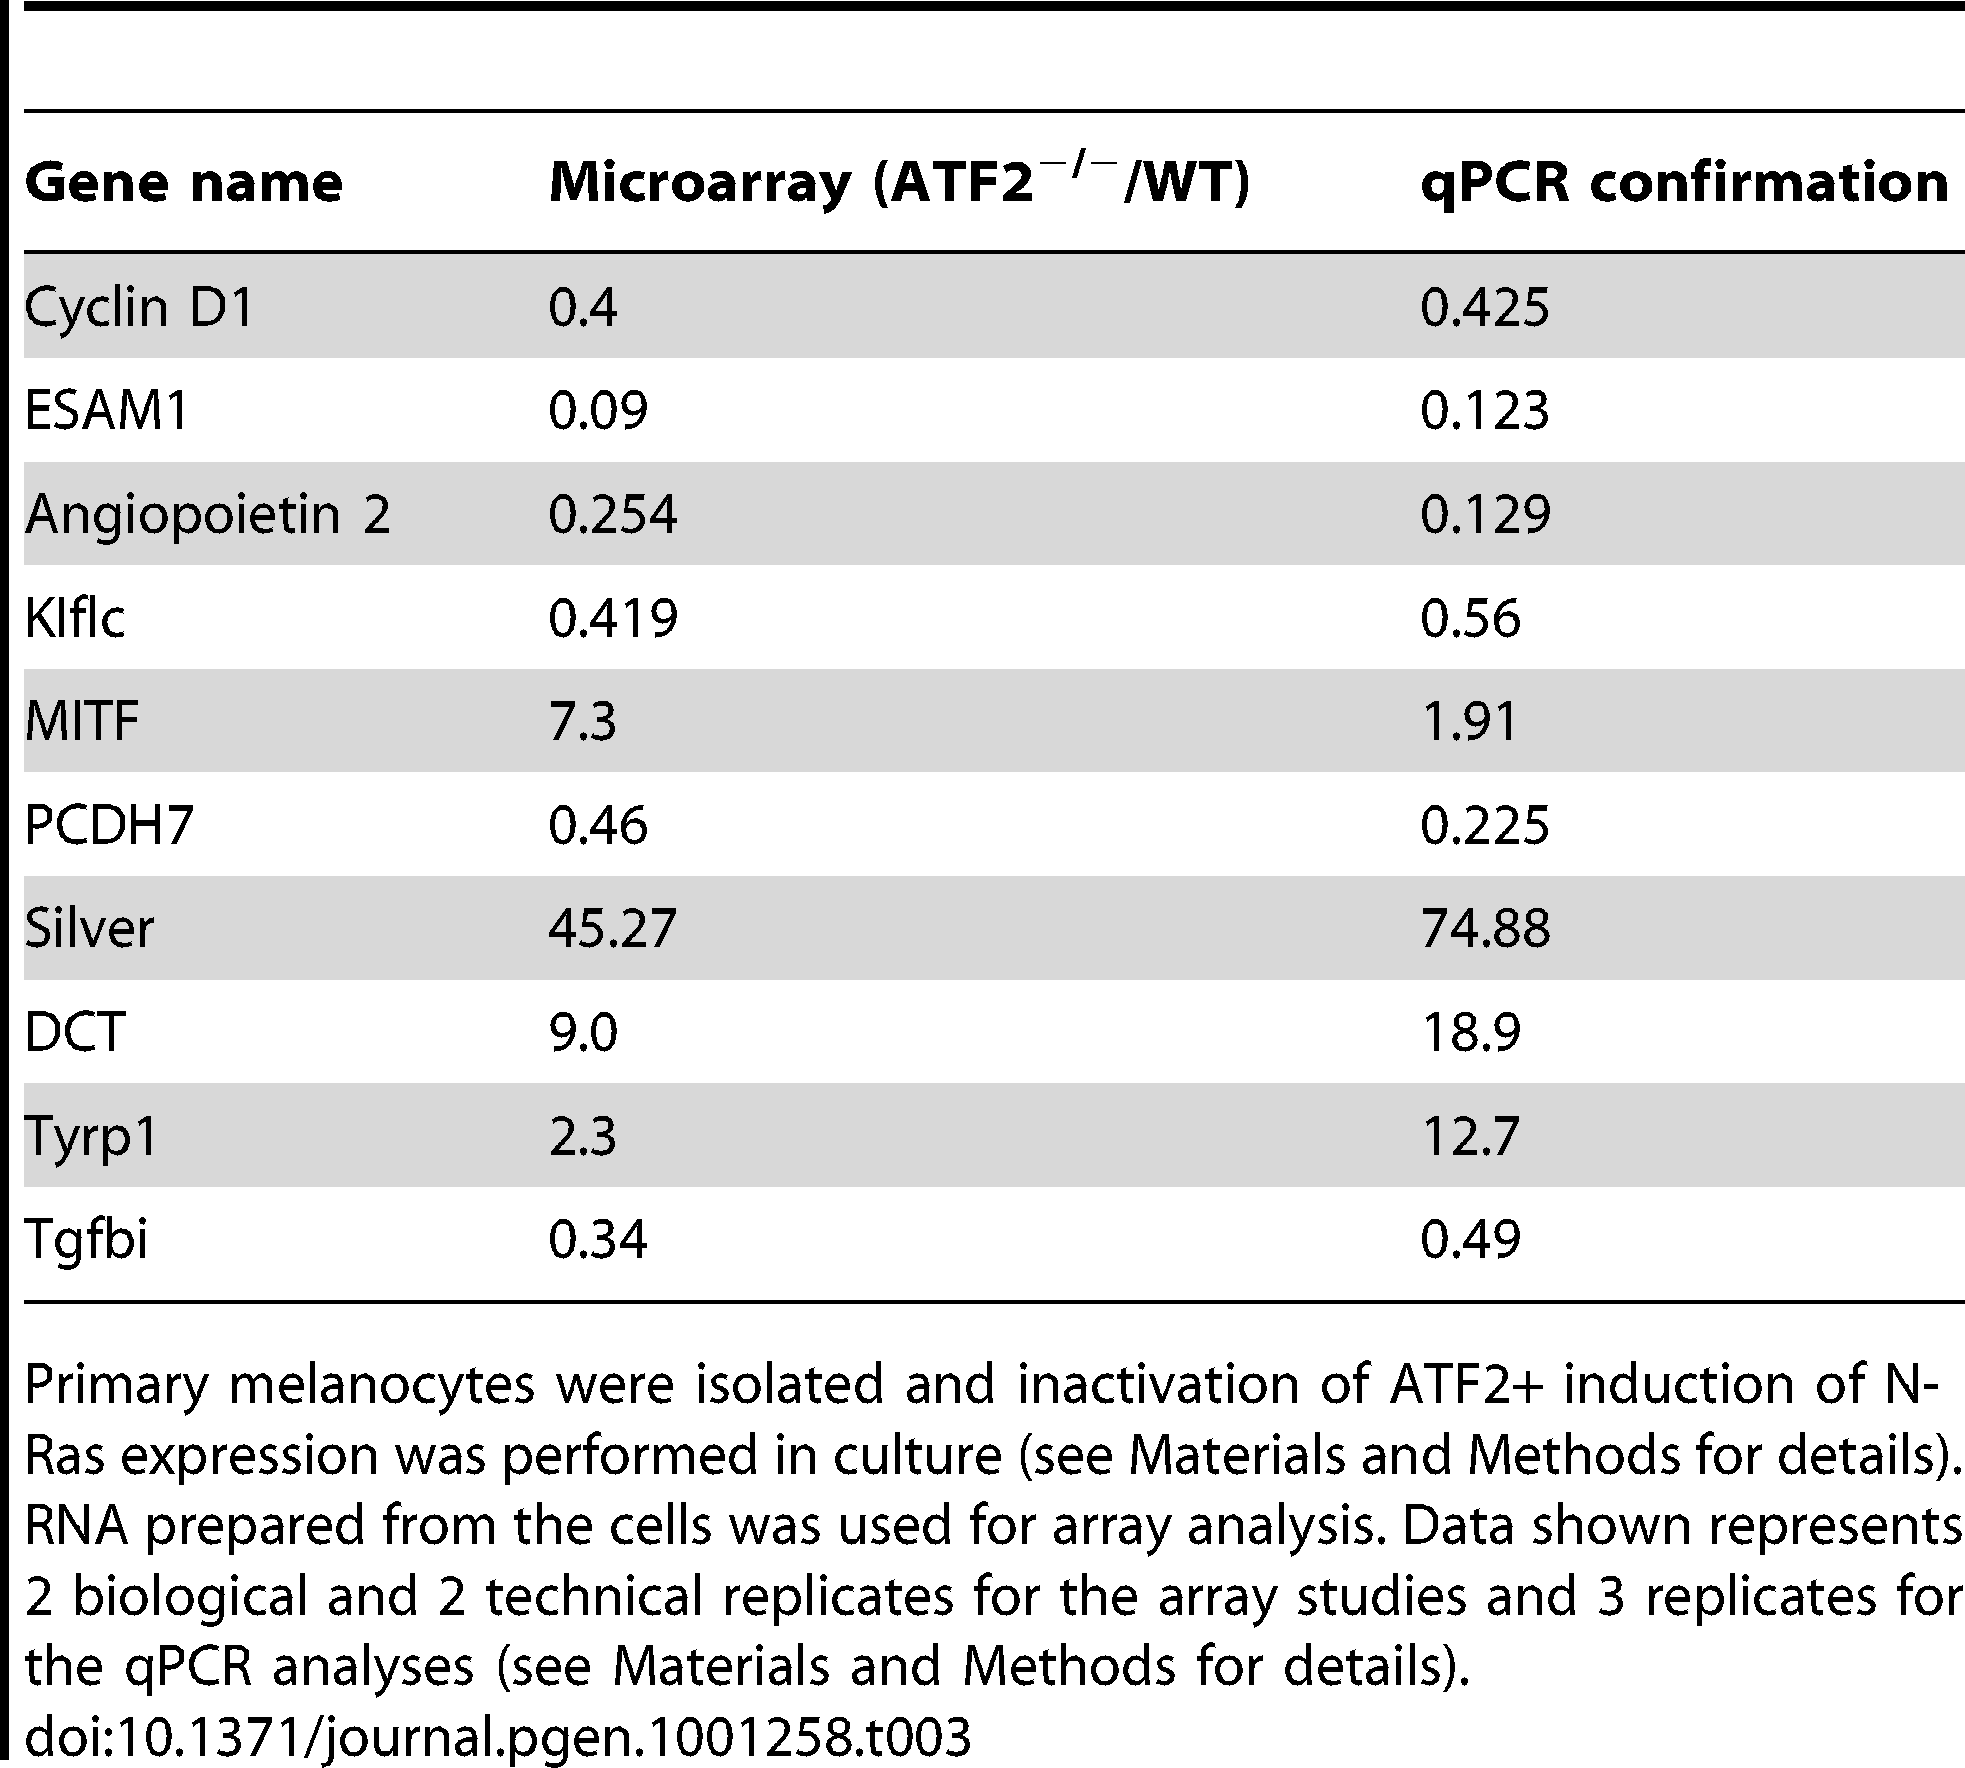 Microarray analysis of <i>ATF2<sup>+/+</sup>TyrCre<sup>+</sup>Nras<sup>+</sup>Ink4a<sup>−/−</sup></i> and <i>ATF2<sup>−/−</sup>TyrCre<sup>+</sup>Nras<sup>+</sup>Ink4a<sup>−/−</sup></i>melanocytes and confirmation by qPCR.